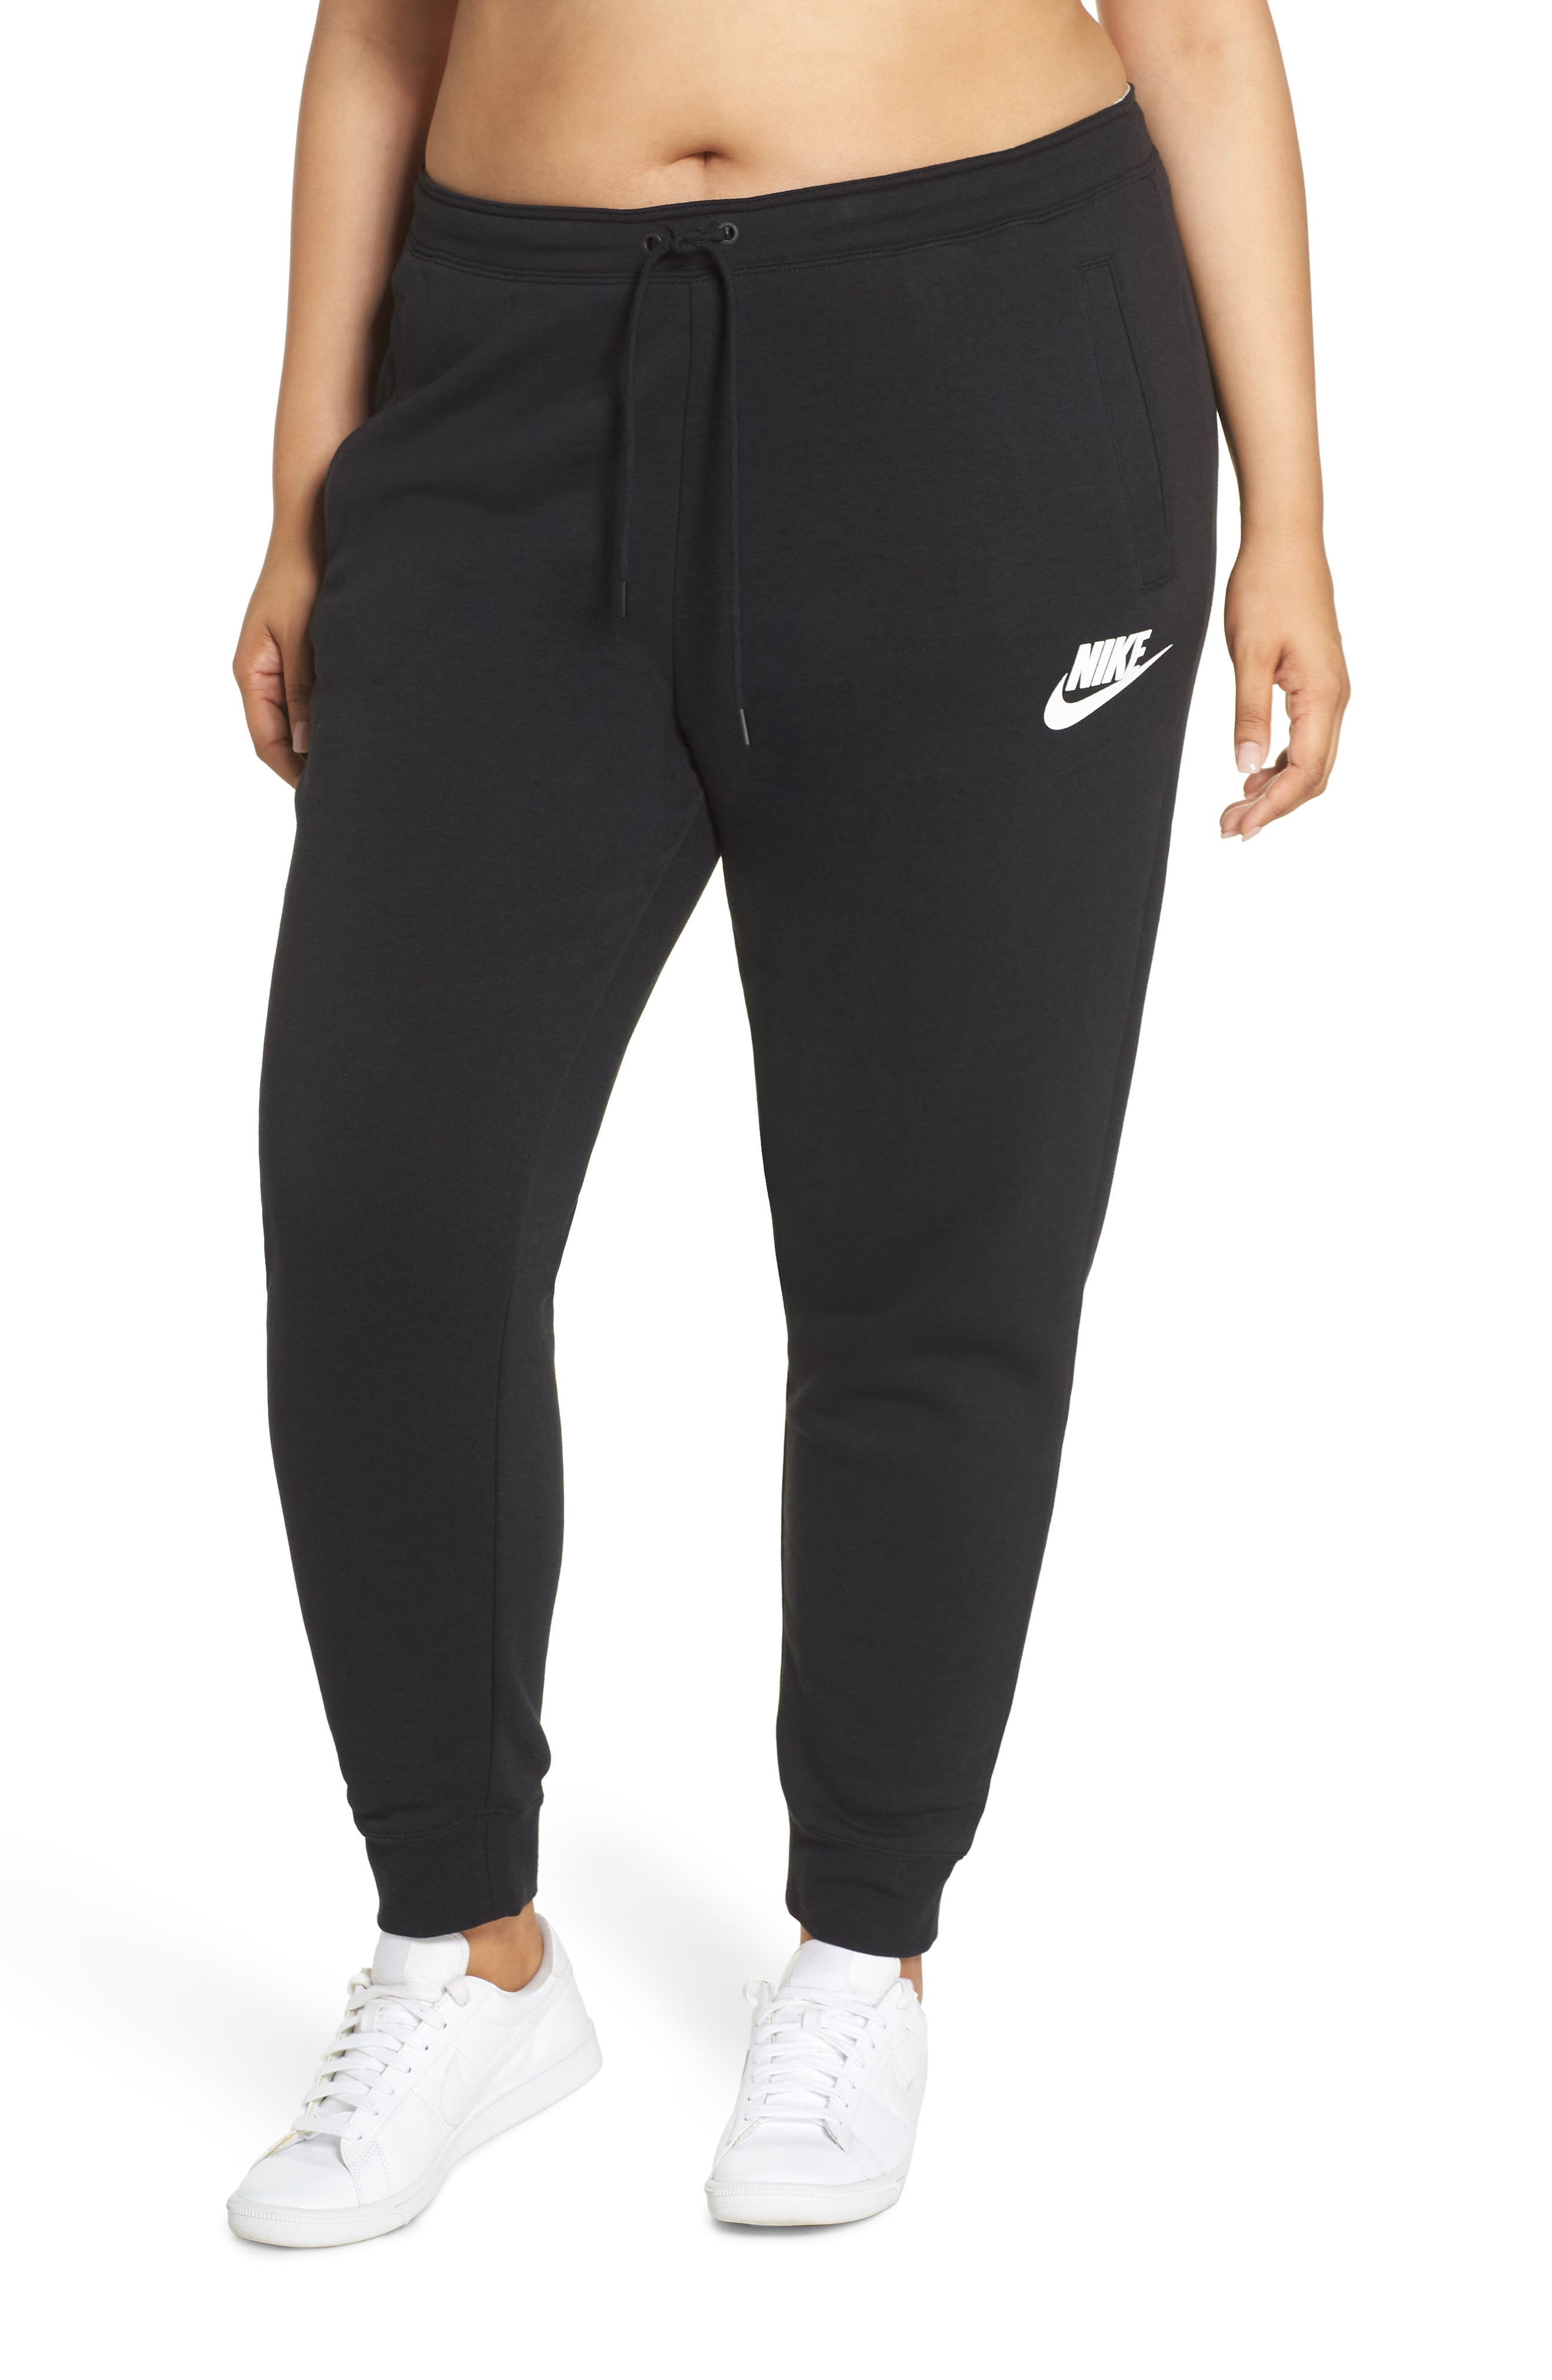 Sportswear Rally Jogger Pants,                         Main,                         color, BLACK/ BLACK/ WHITE